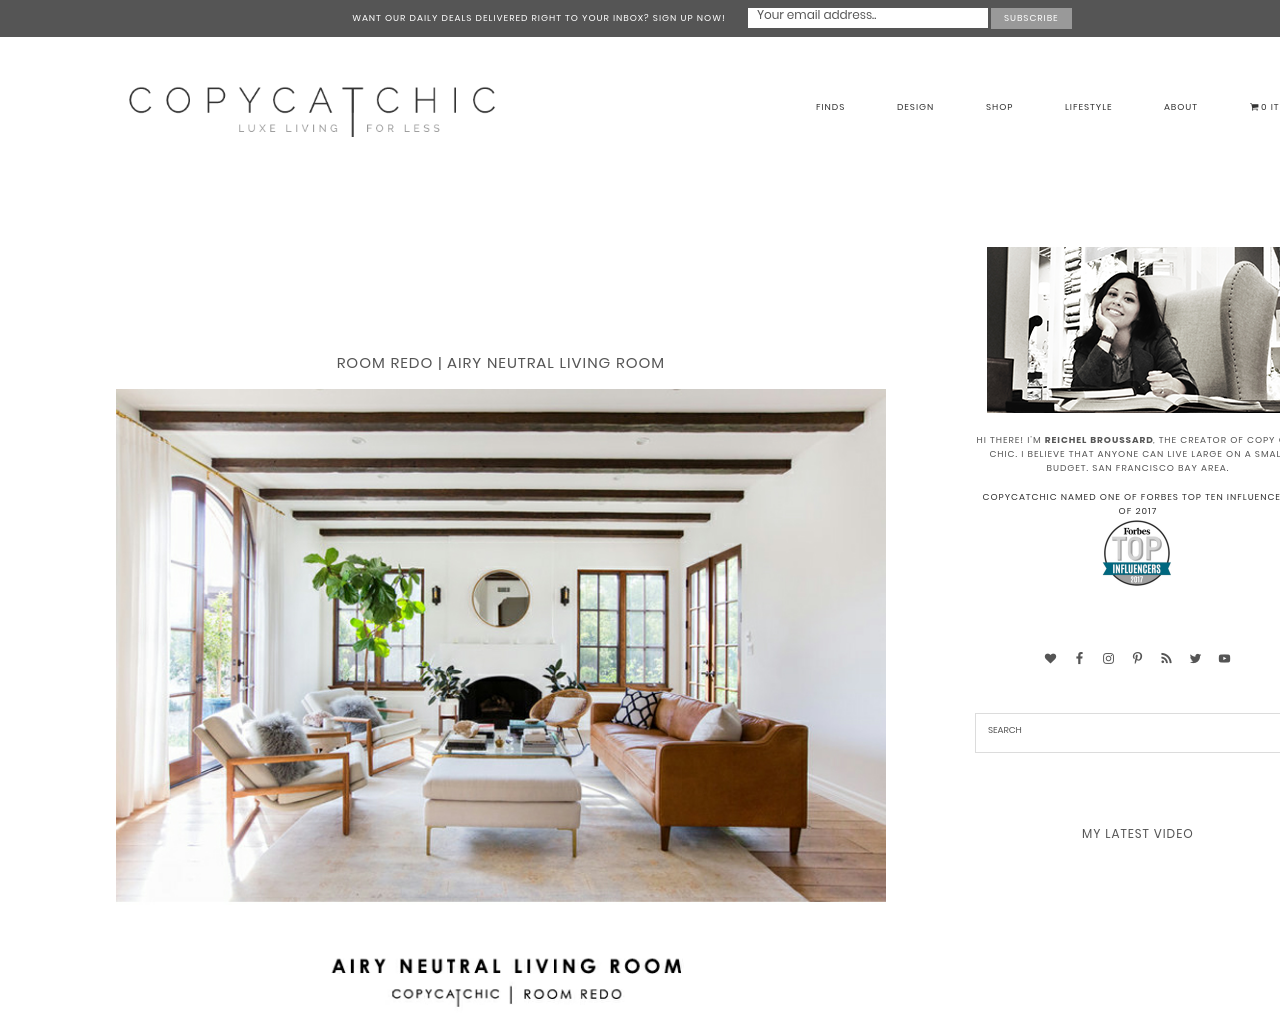 Copy-Cat-Chic-Advertising-Reviews-Pricing